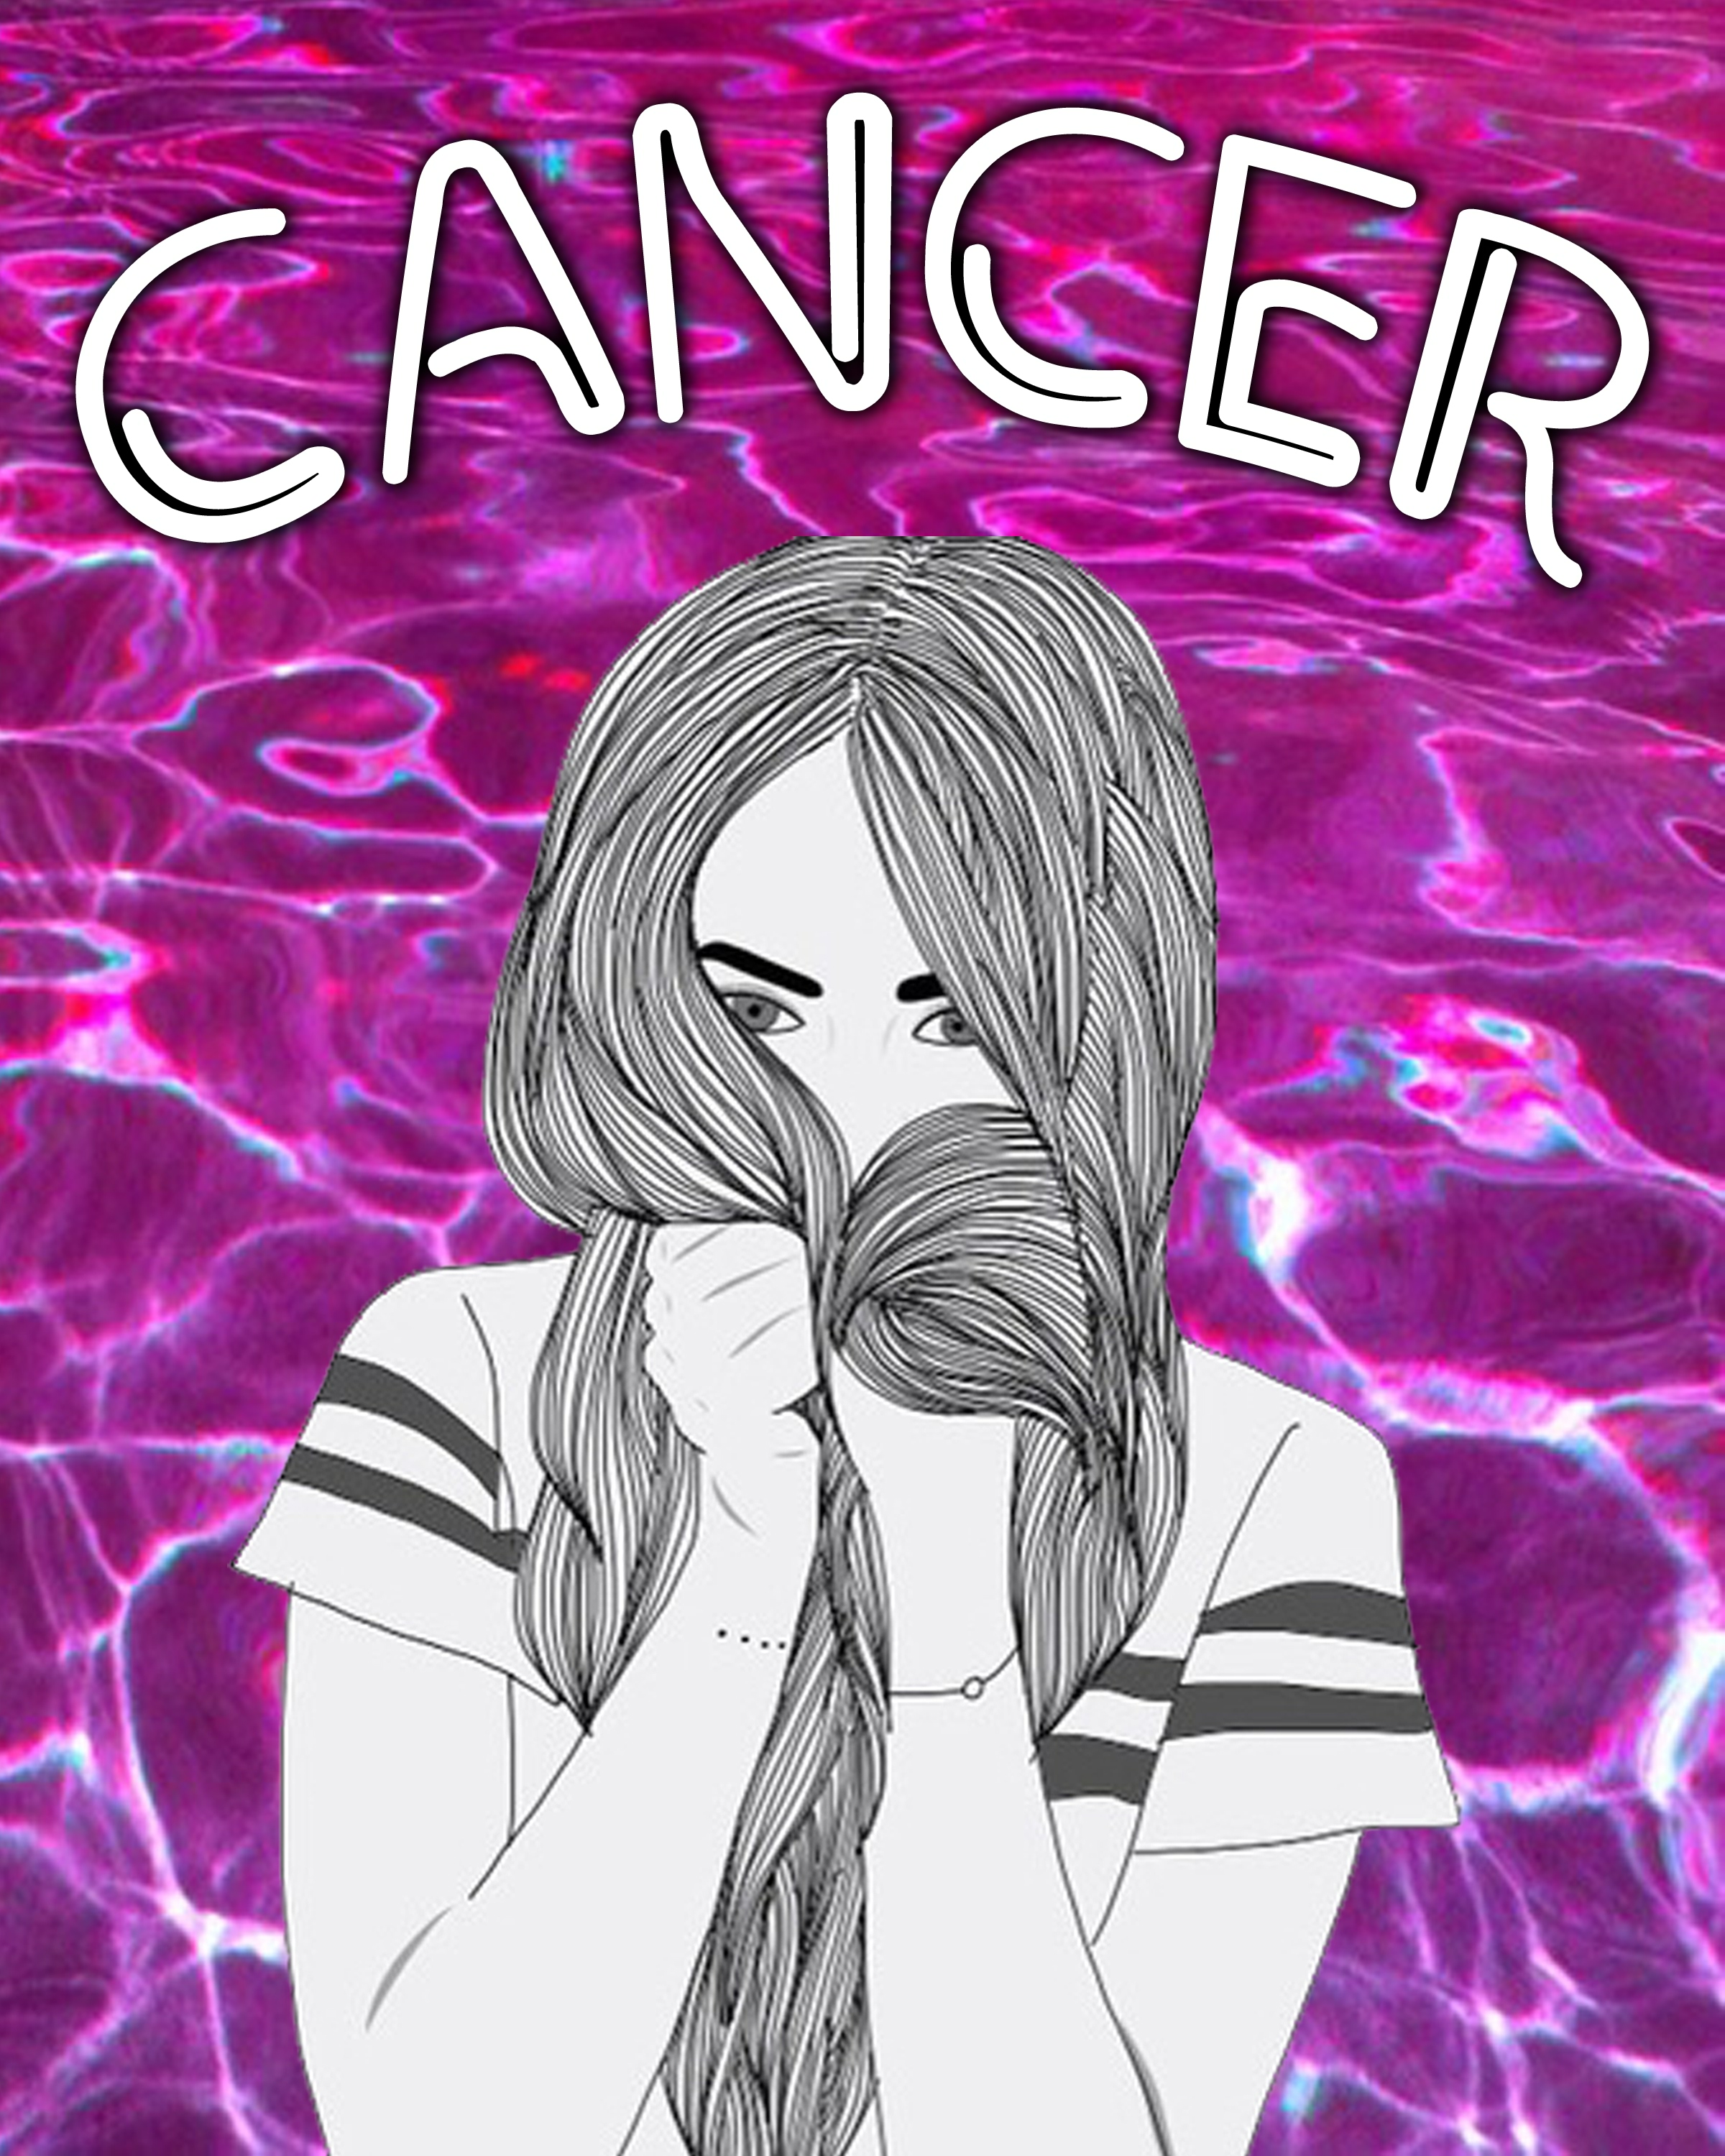 Cancer zodiac sign why he wants you back